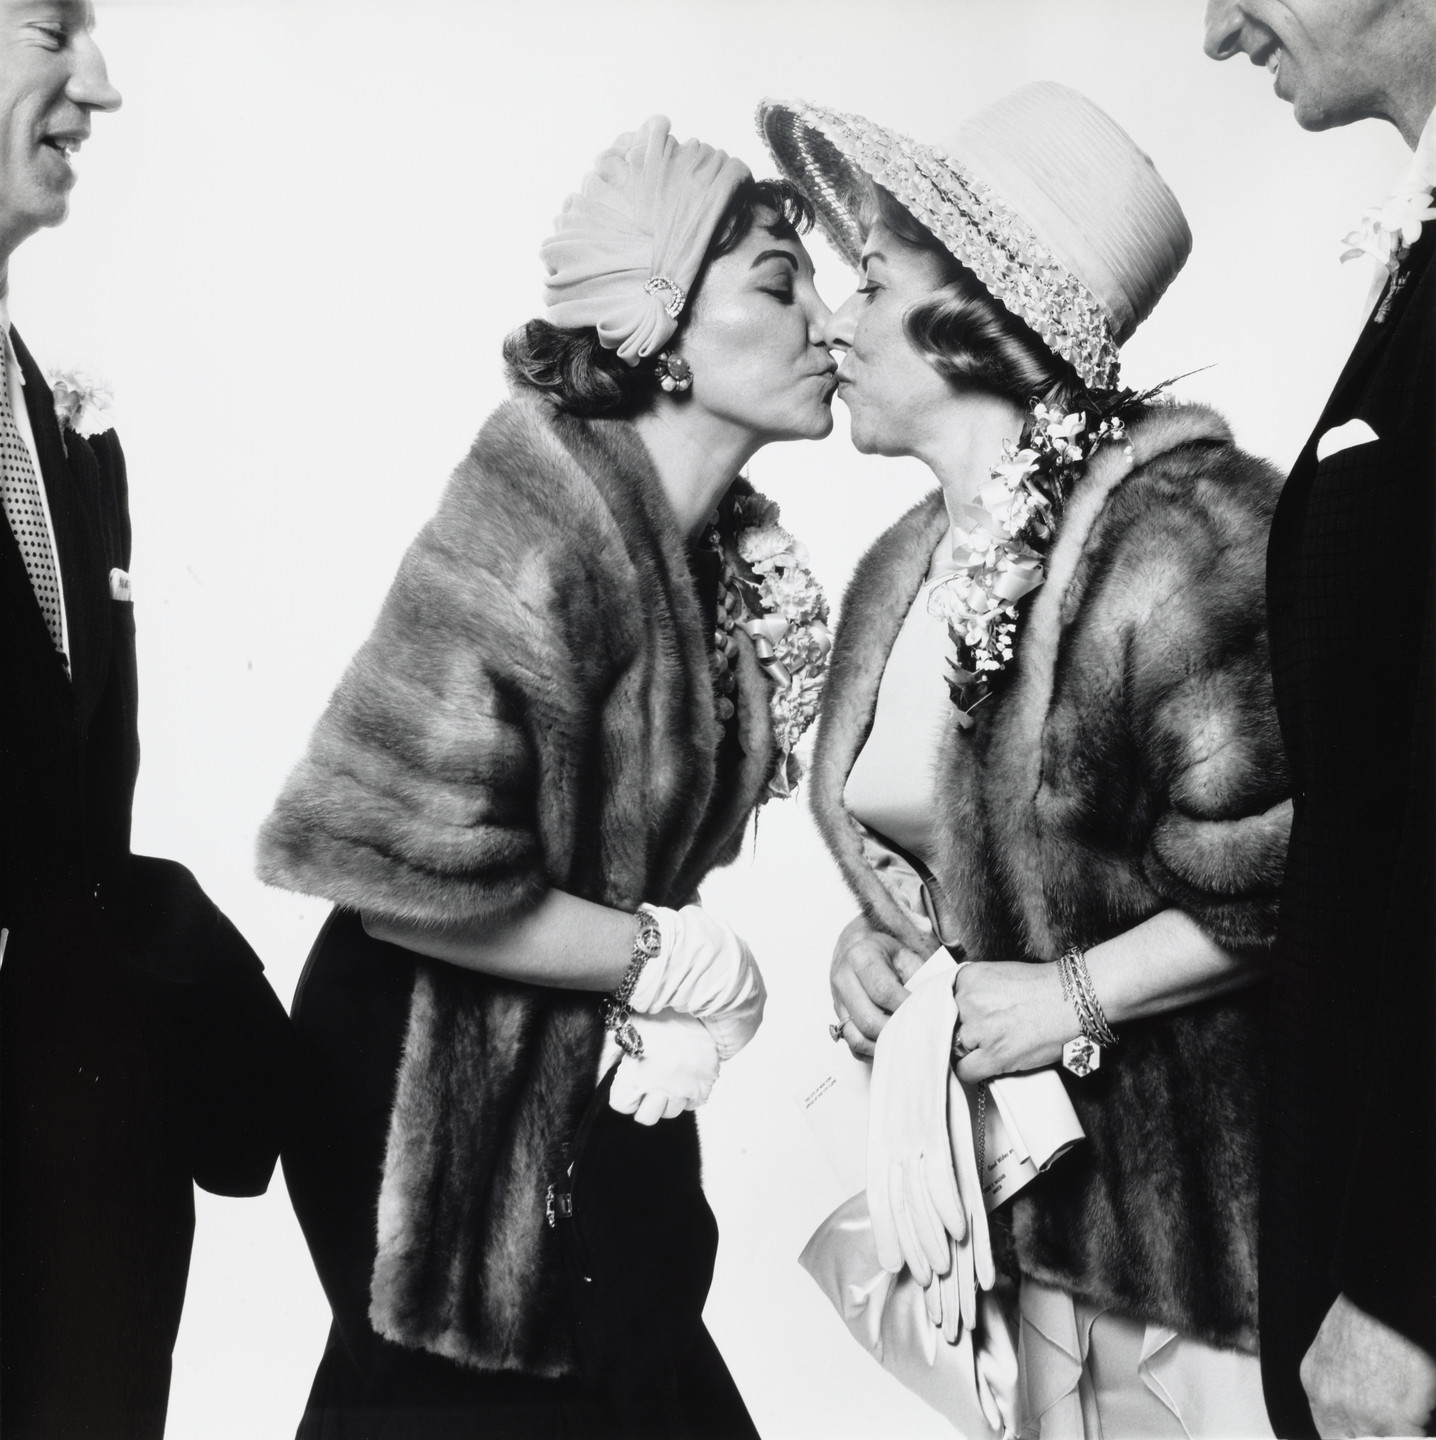 Richard Avedon. Wedding of Mr. and Mrs. H. E. Kennedy. April 29, 1961